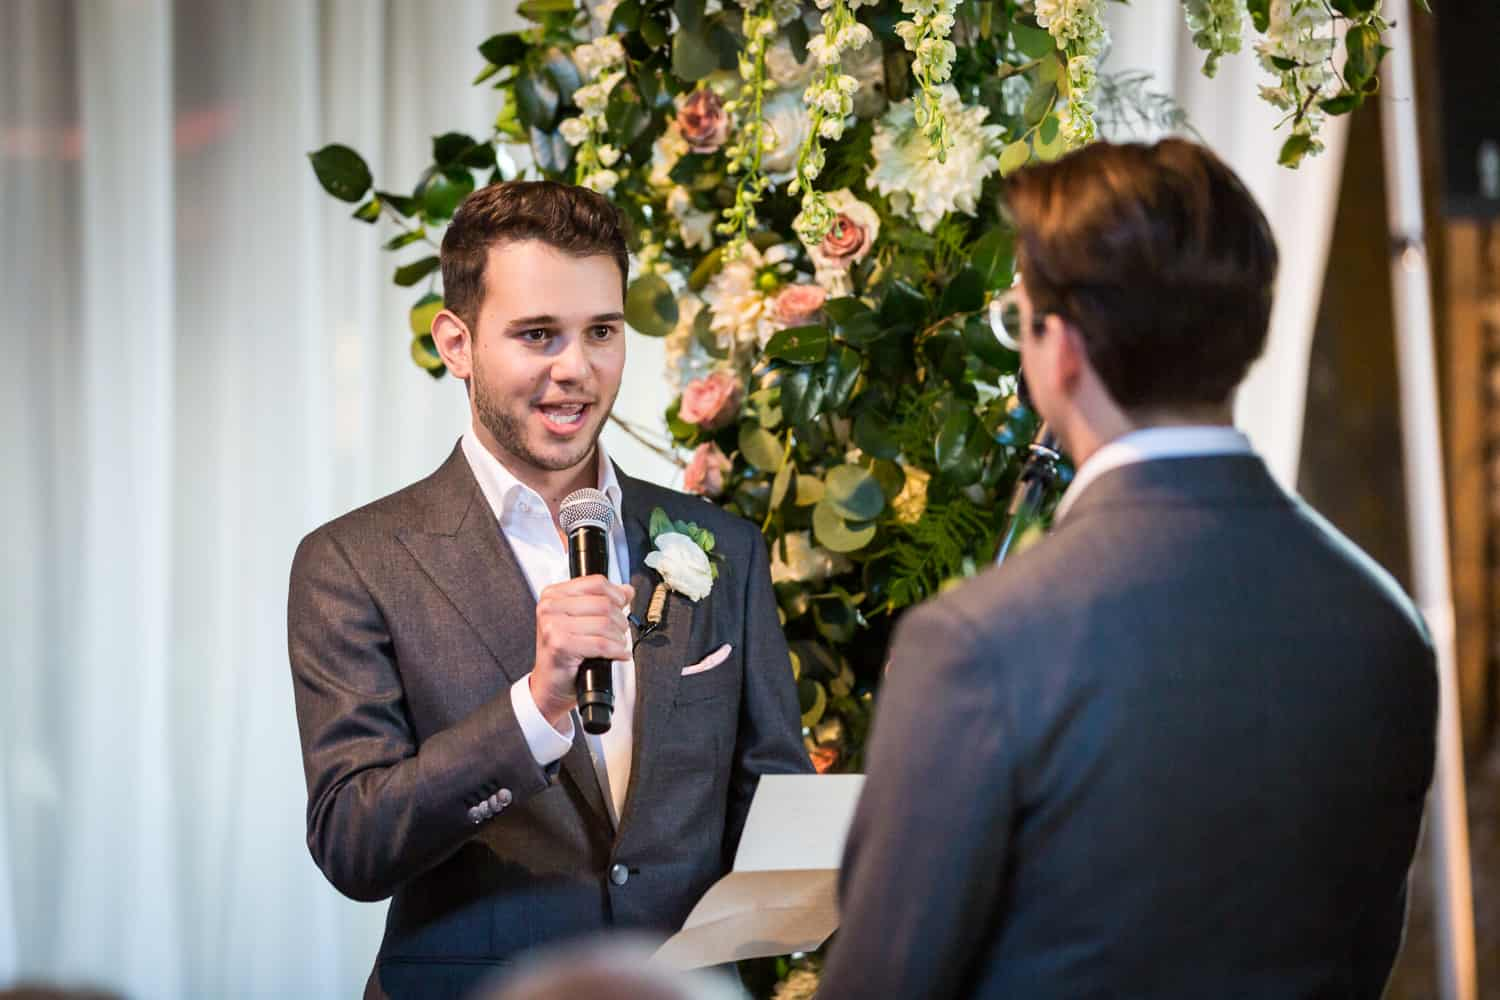 Greenpoint Loft wedding photos of groom saying vows into microphone during ceremony